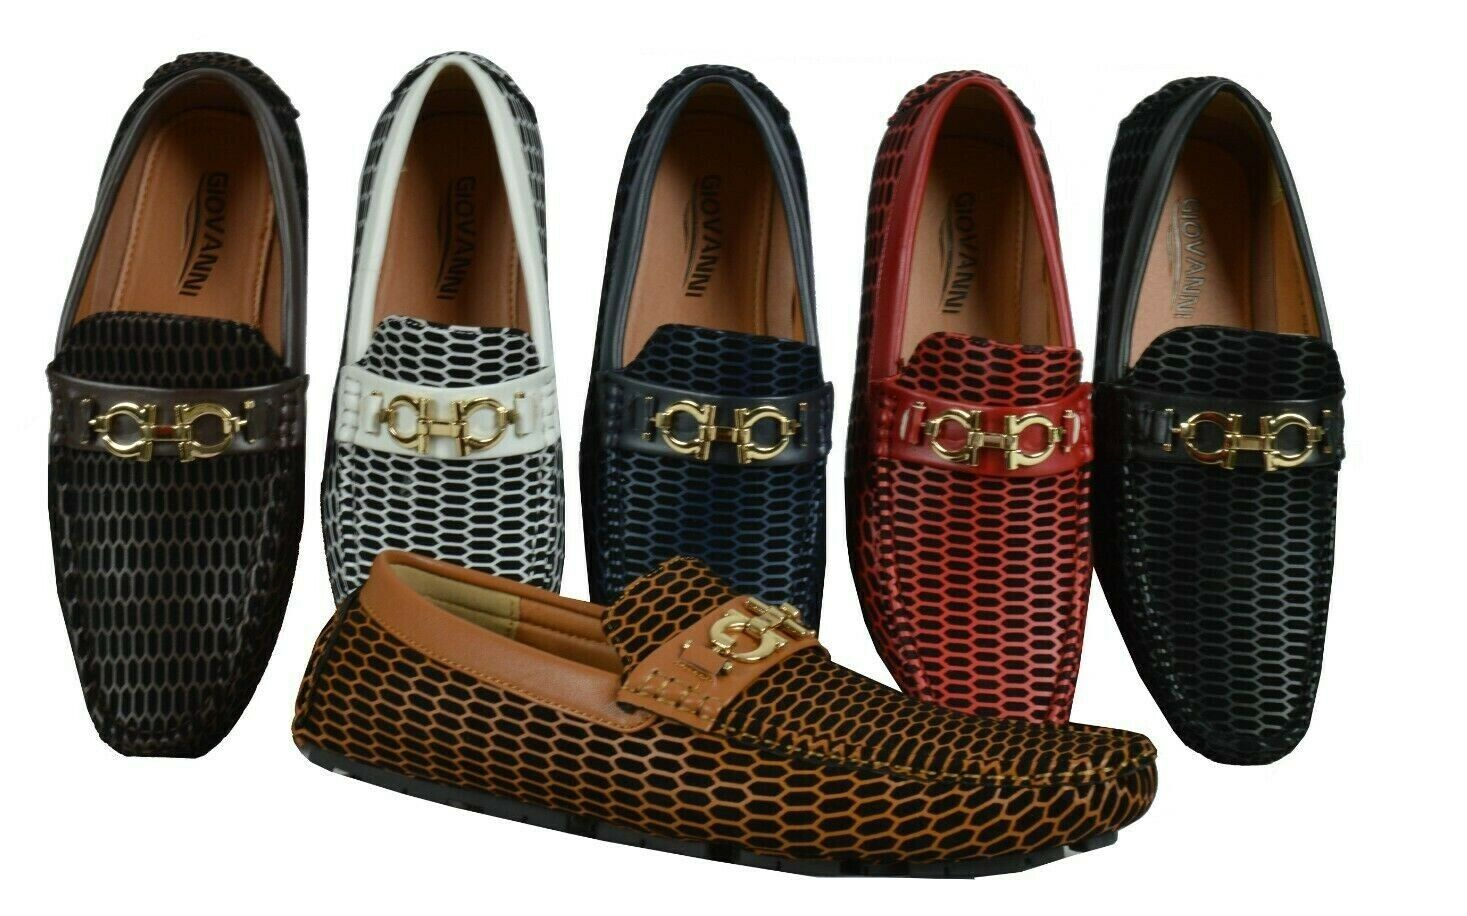 Men's Loafers Giovanni Dress Shoes Moccasin Wedding Formal M